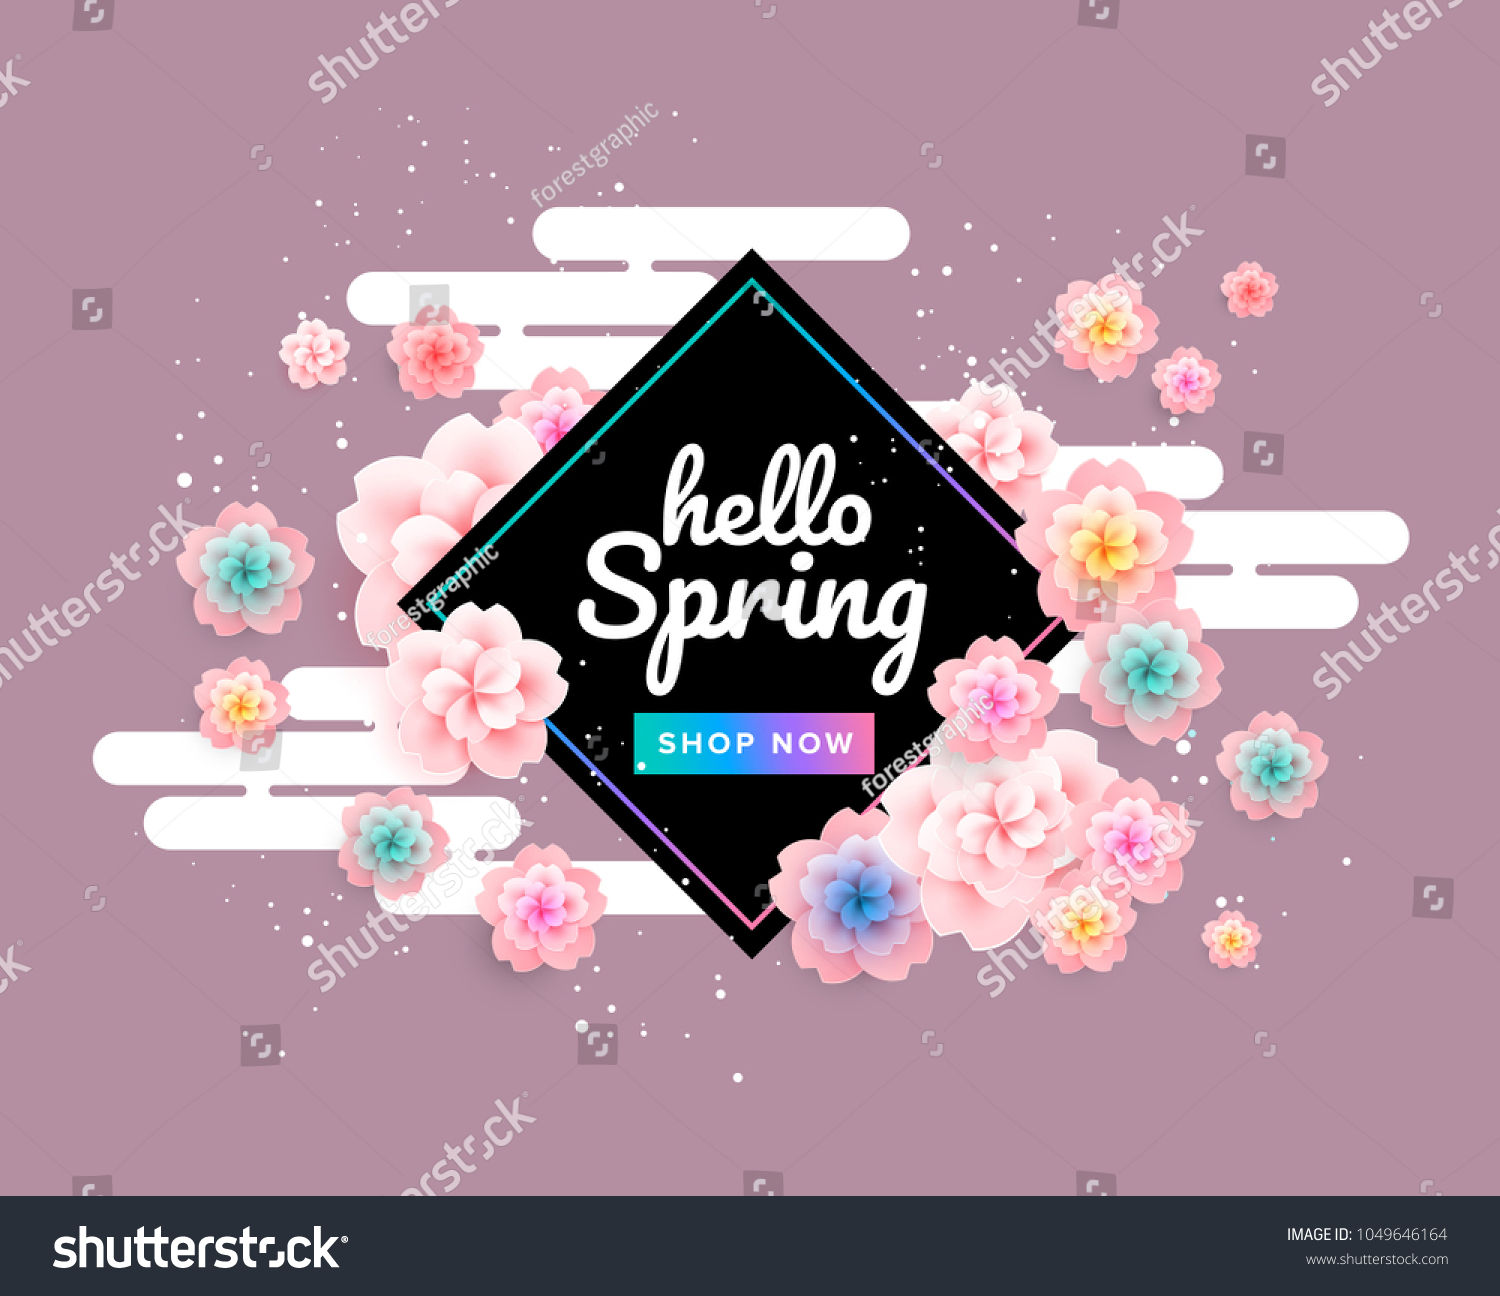 Pink Spring Background Beautiful Flowers Cherry Stock Vector Royalty Free 1049646164